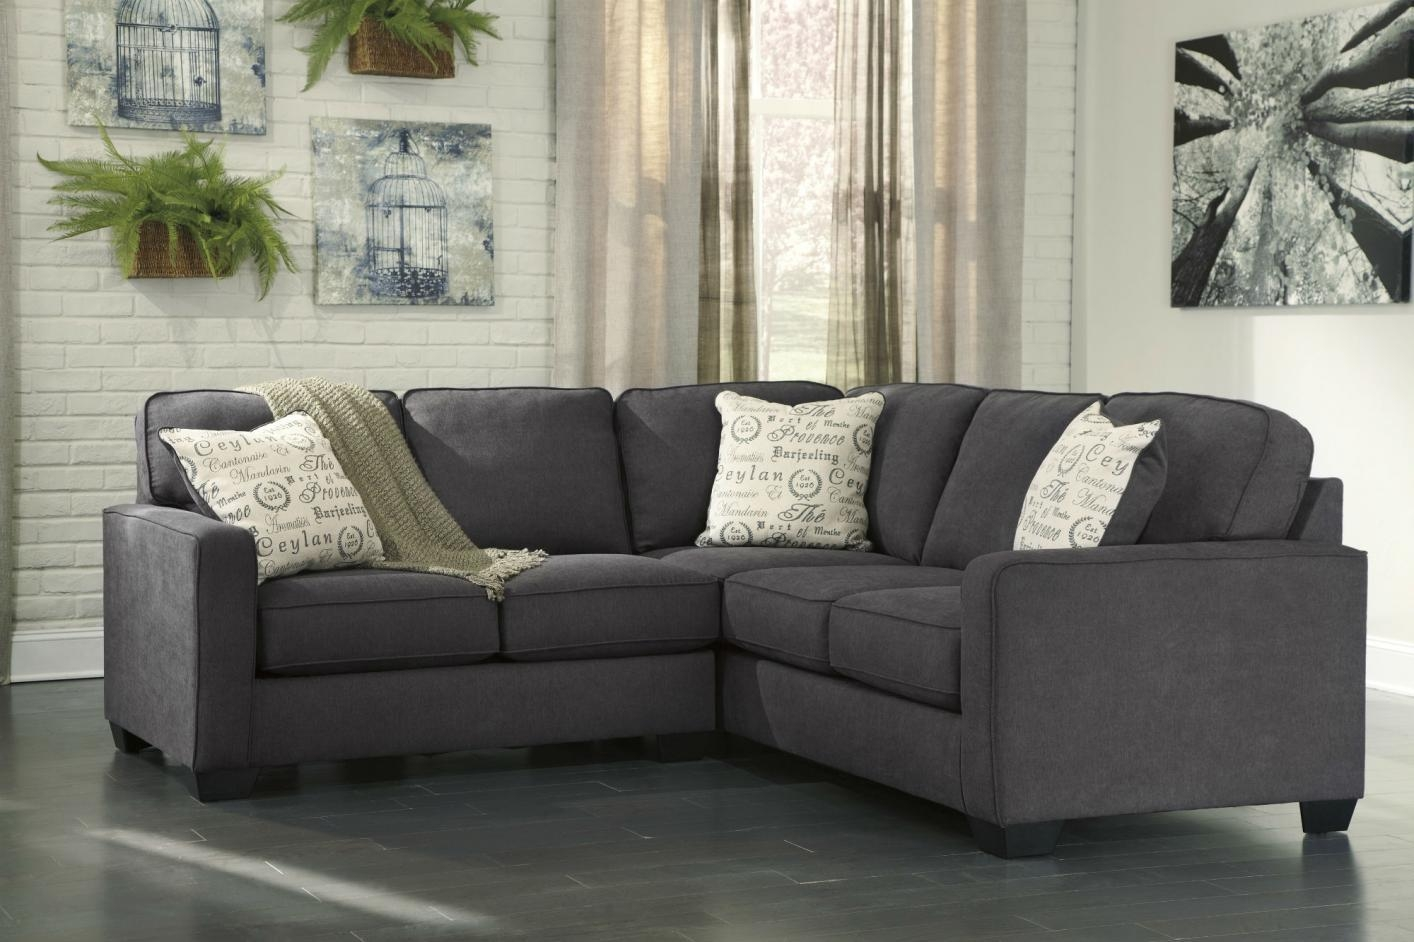 Gray Sectional Sofa Ashley Furniture | Tehranmix Decoration intended for Charcoal Gray Sectional Sofas